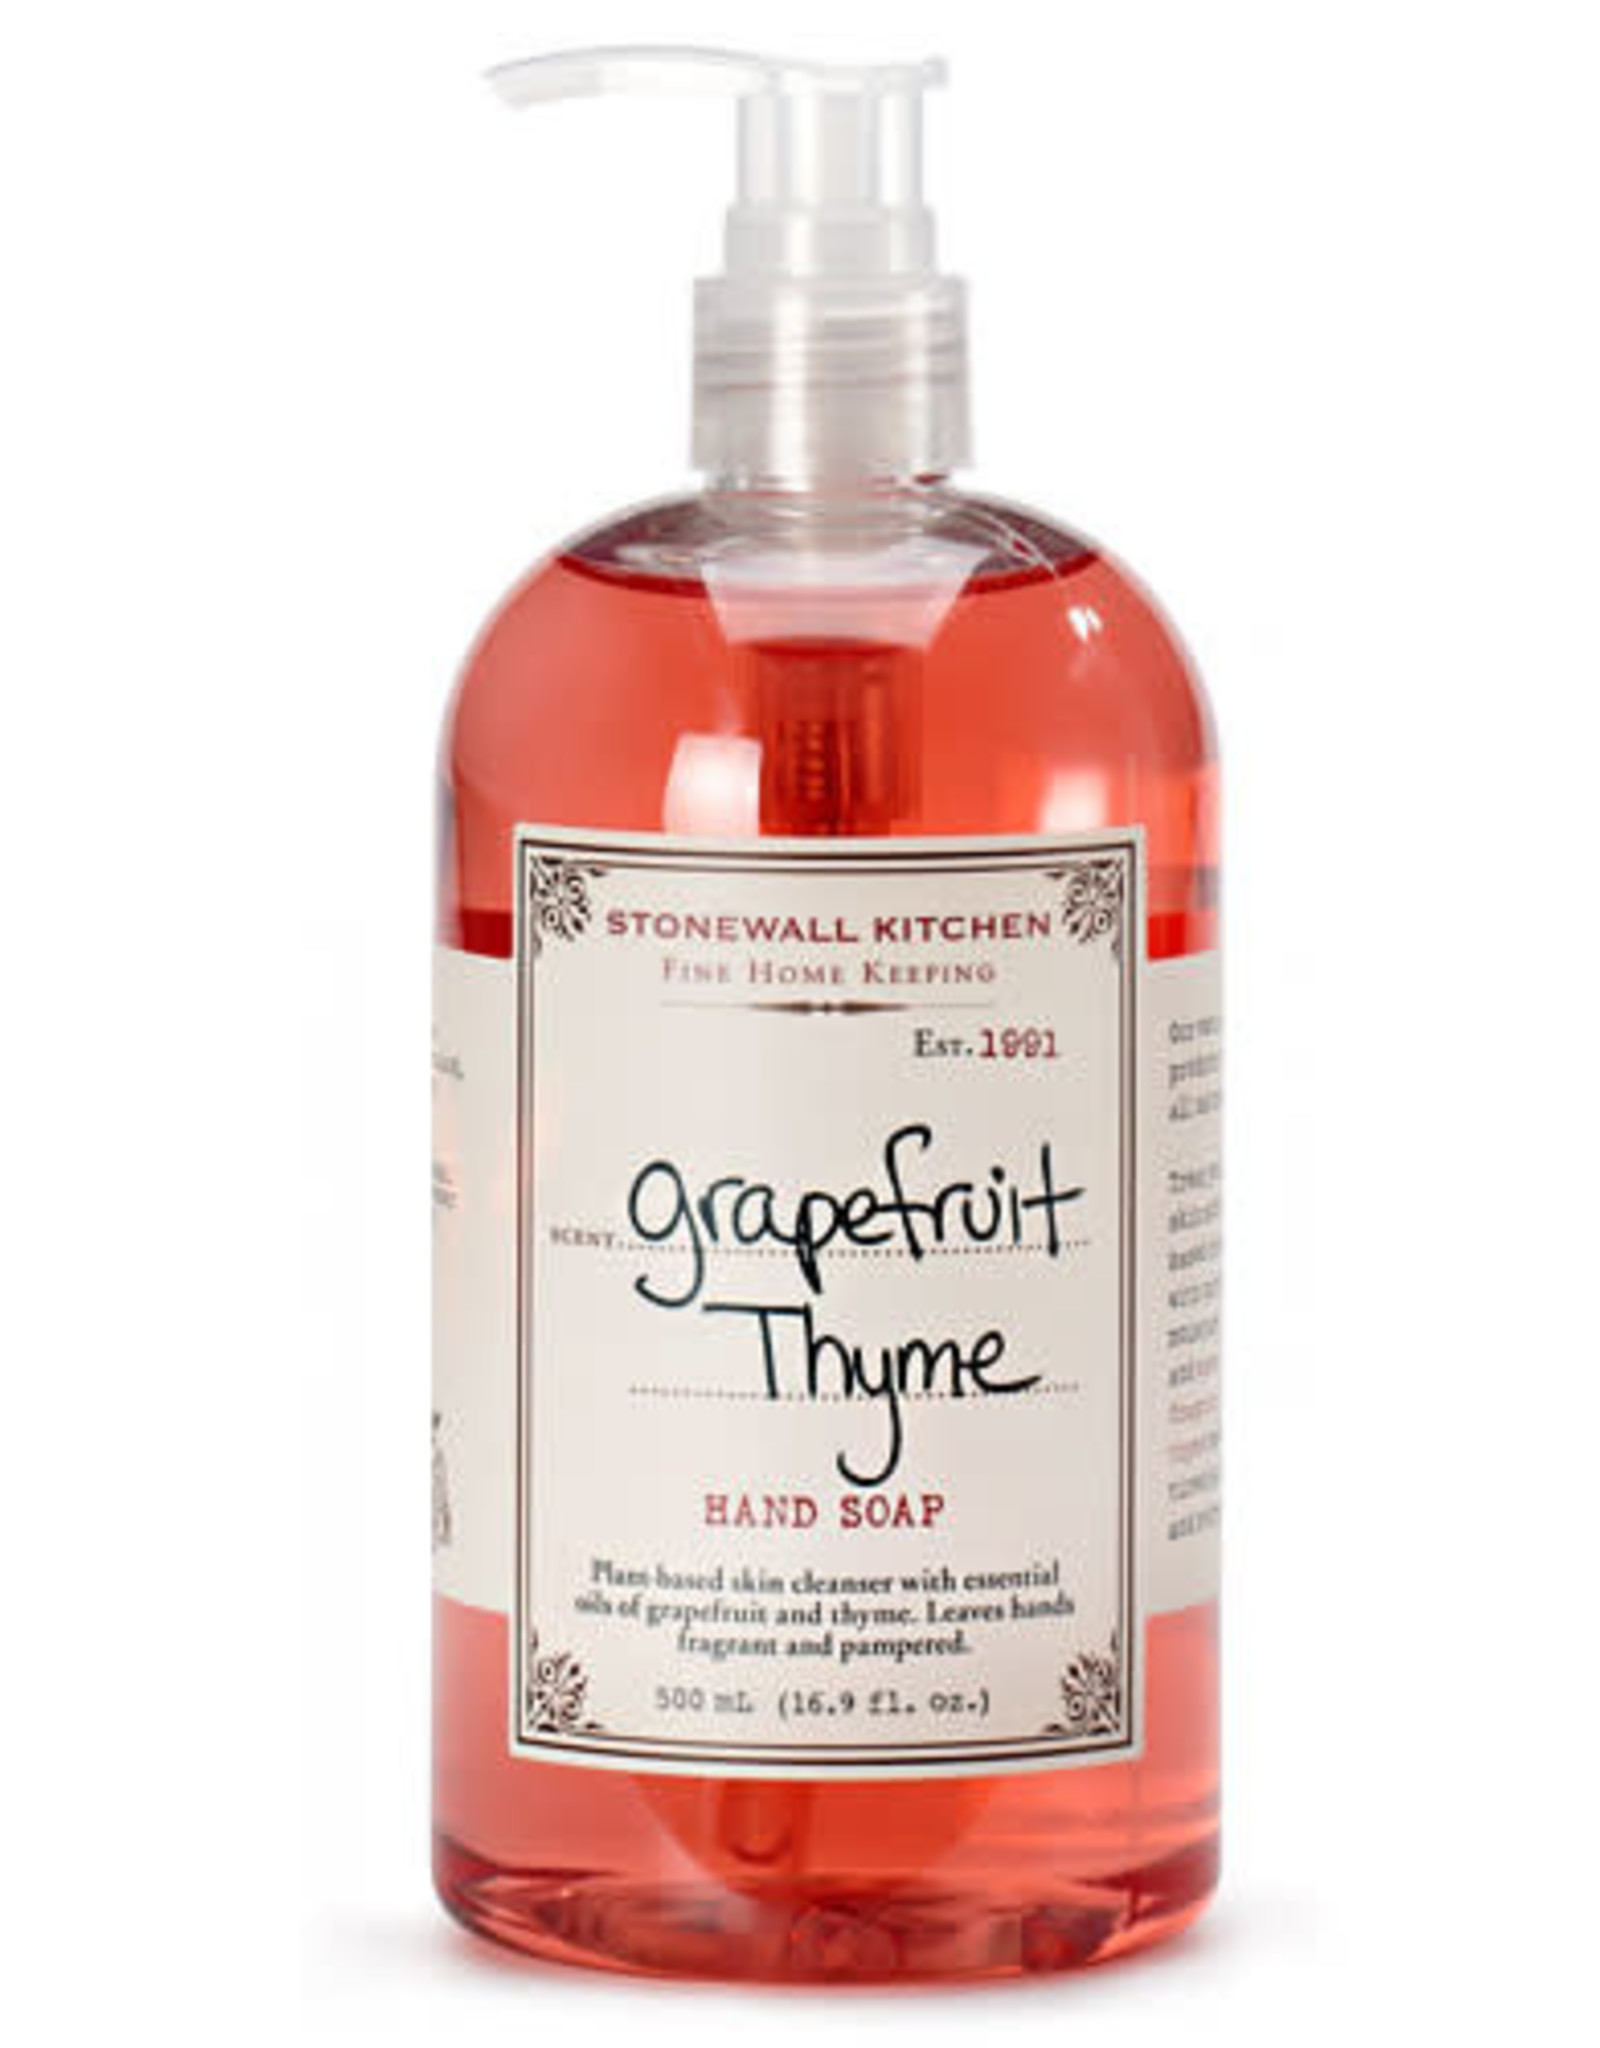 Stonewall Kitchen Grapefruit Thyme Hand Soap